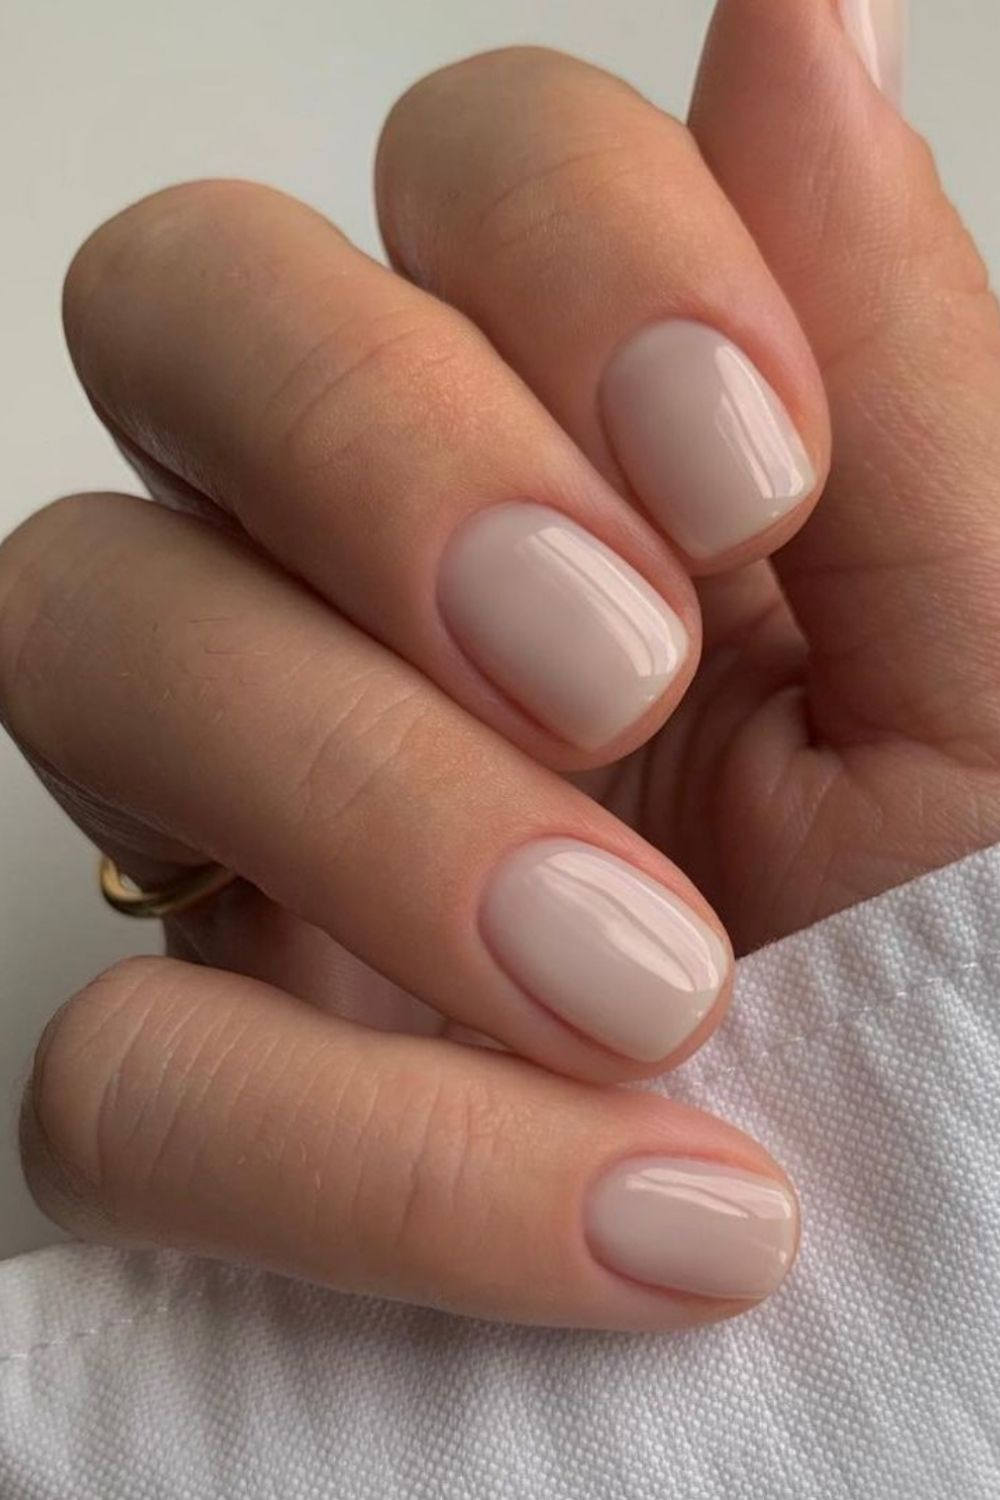 40 Natural short nail design 2021 ideas : almond, oval, square, round